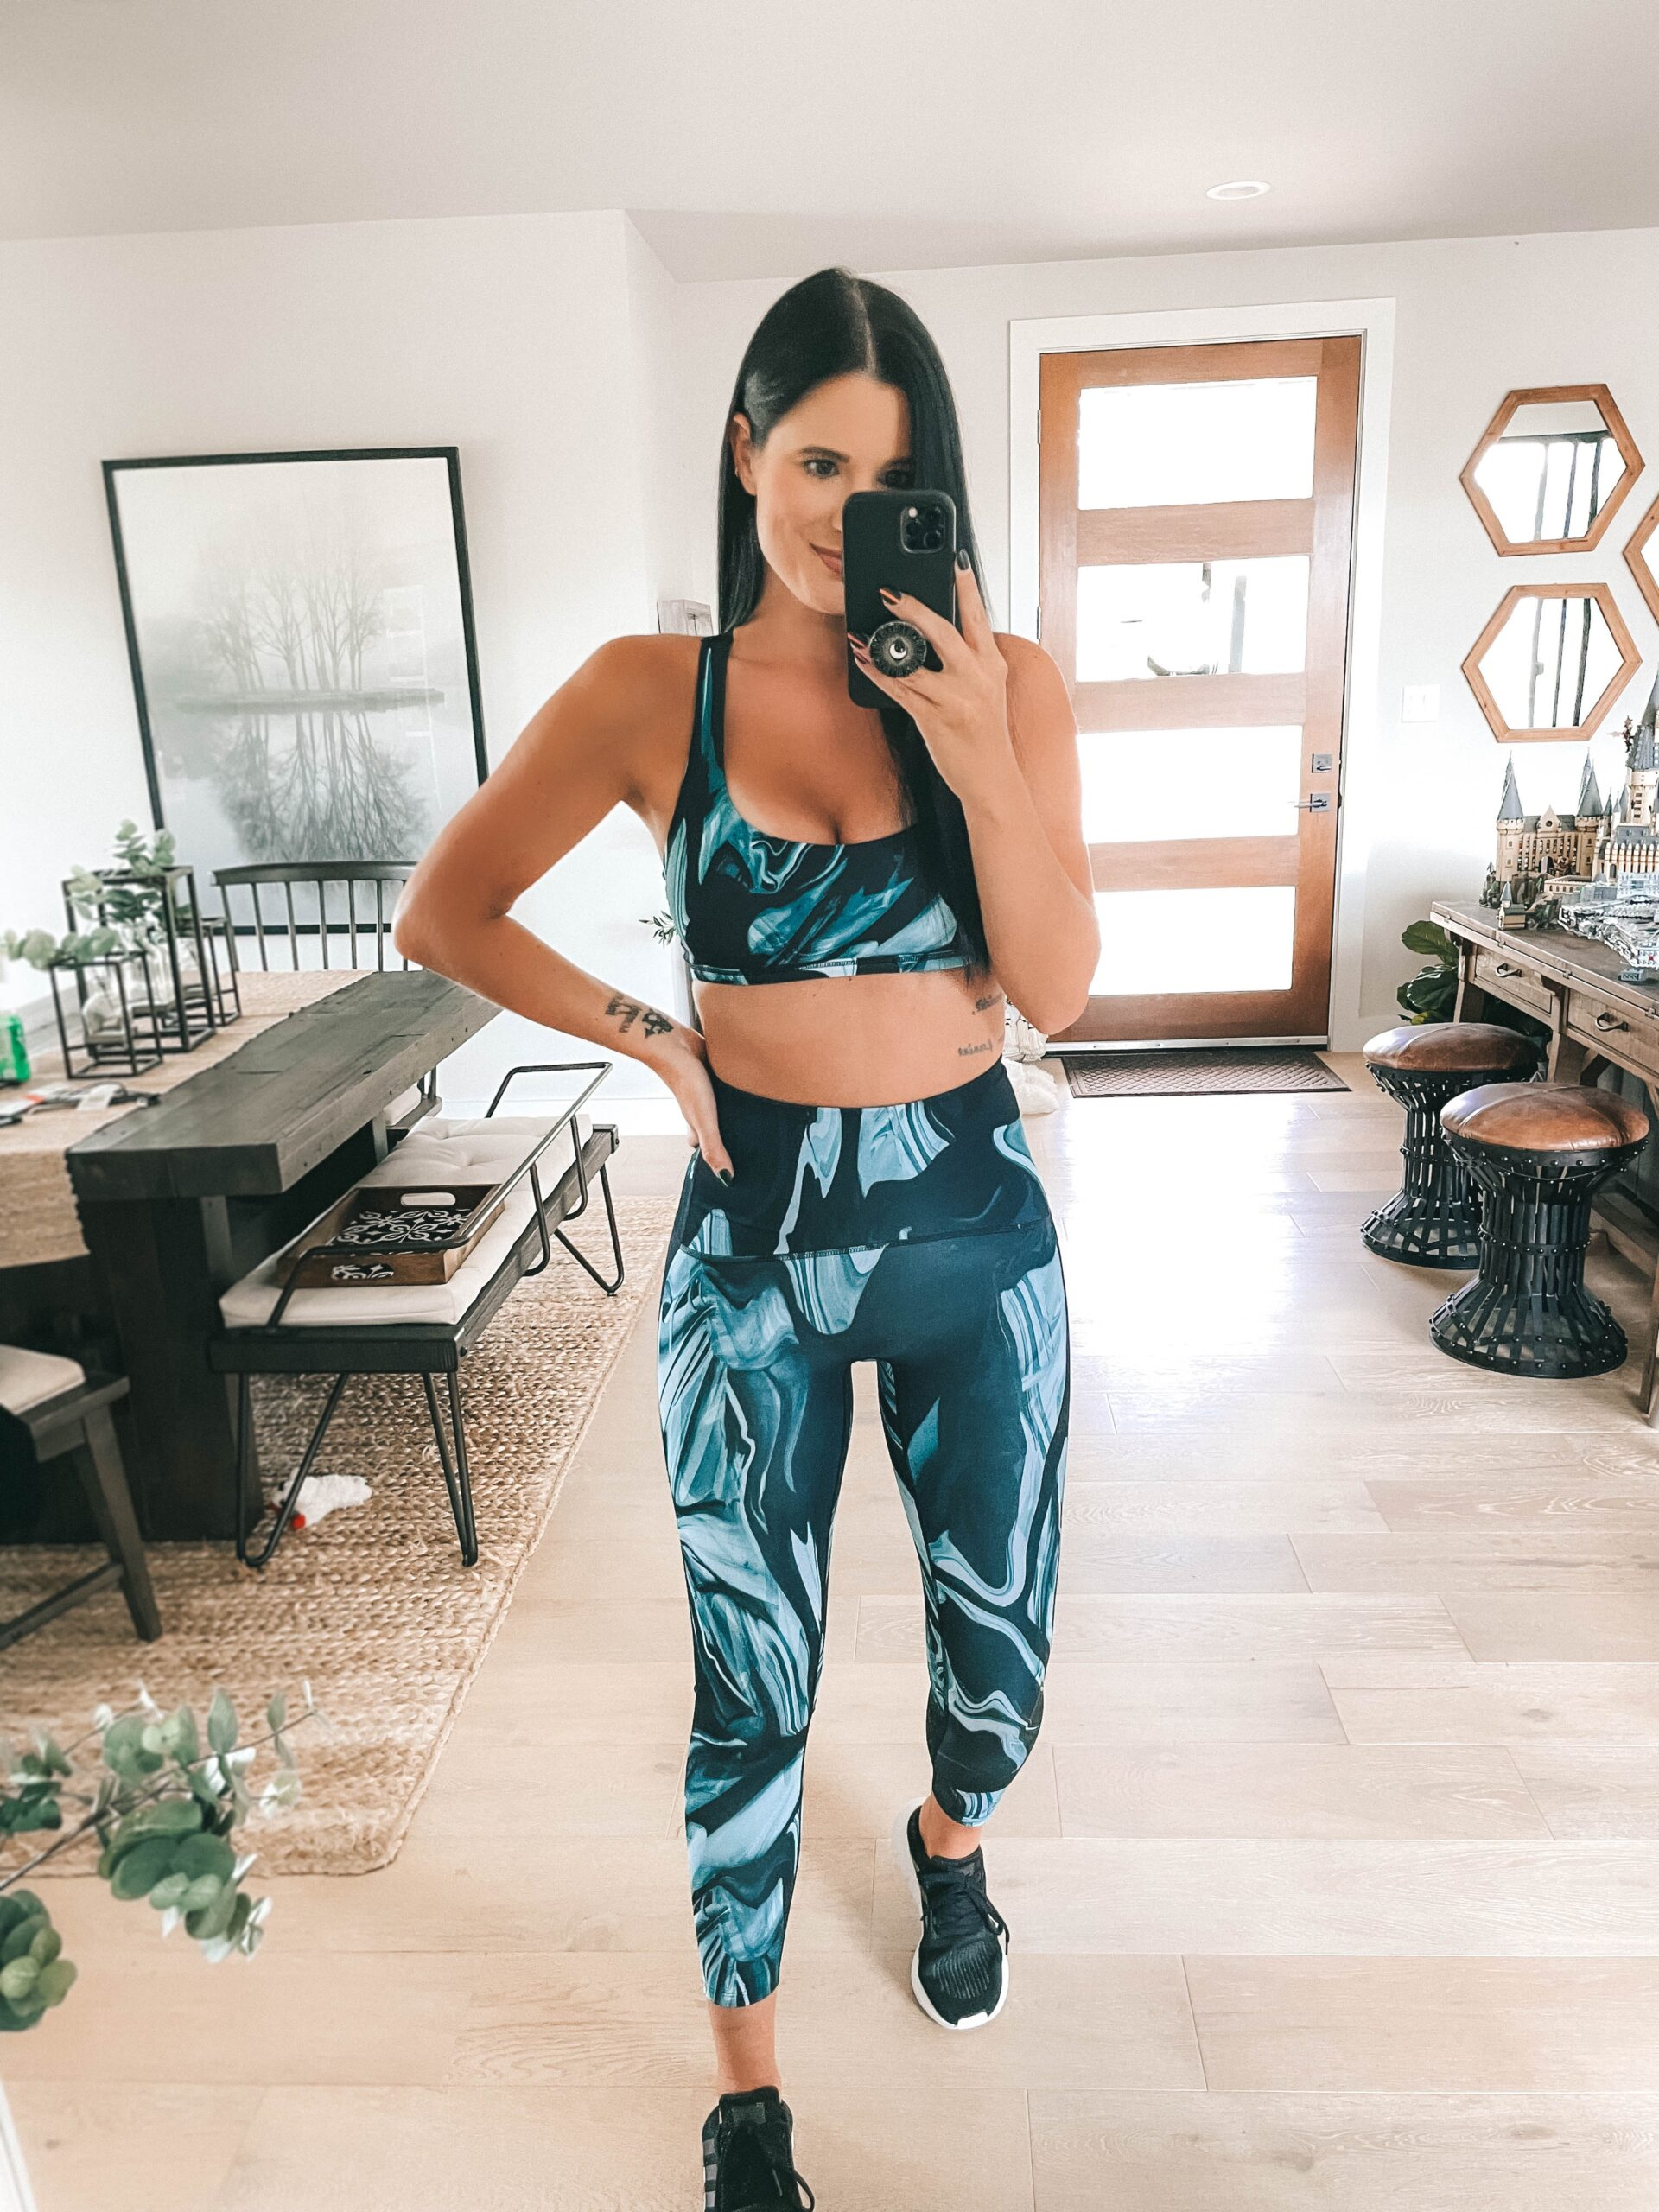 Nordstrom Anniversary Sale by popular Austin fashion blog, Dressed to Kill: image of a woman wearing a blue and black sports bra and blue and black leggings with a pair of black athletic sneakers.